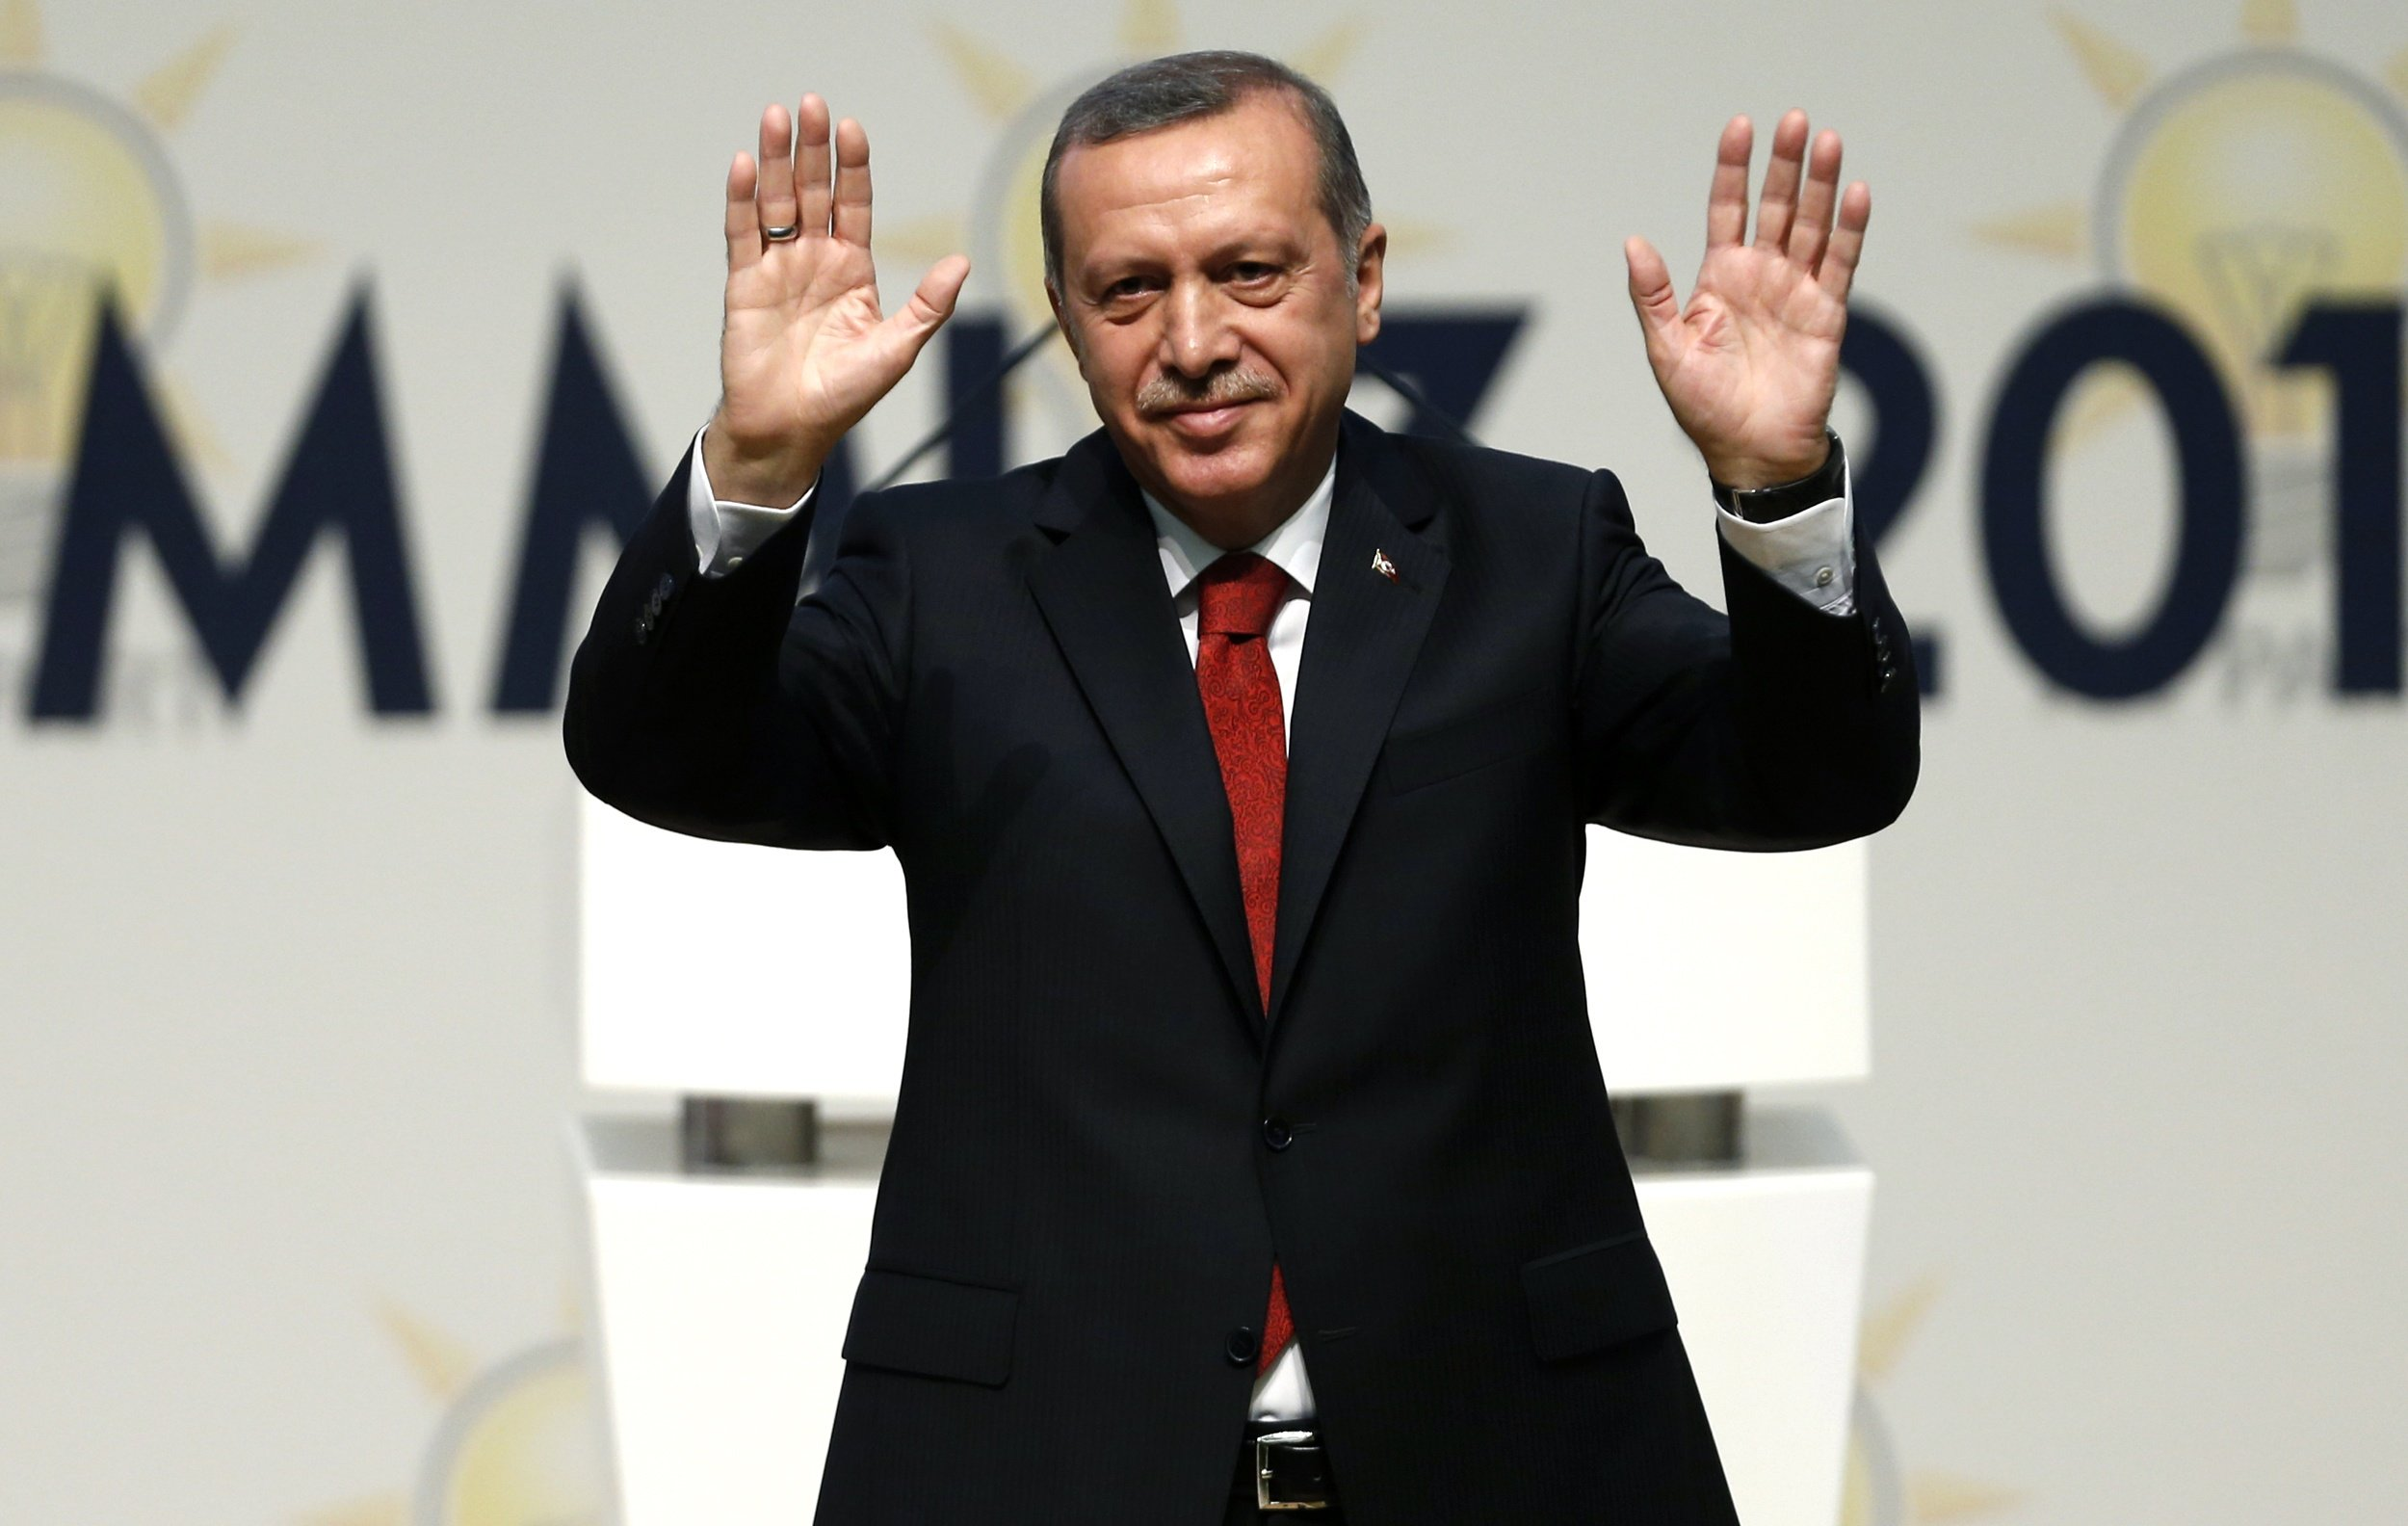 Turkey's Prime Minister Recep Tayyip Erdogan greets Justice and Development Party members at a meeting, in which he is named as his party's candidate for the country's first direct presidential election, in Ankara on July 1, 2014